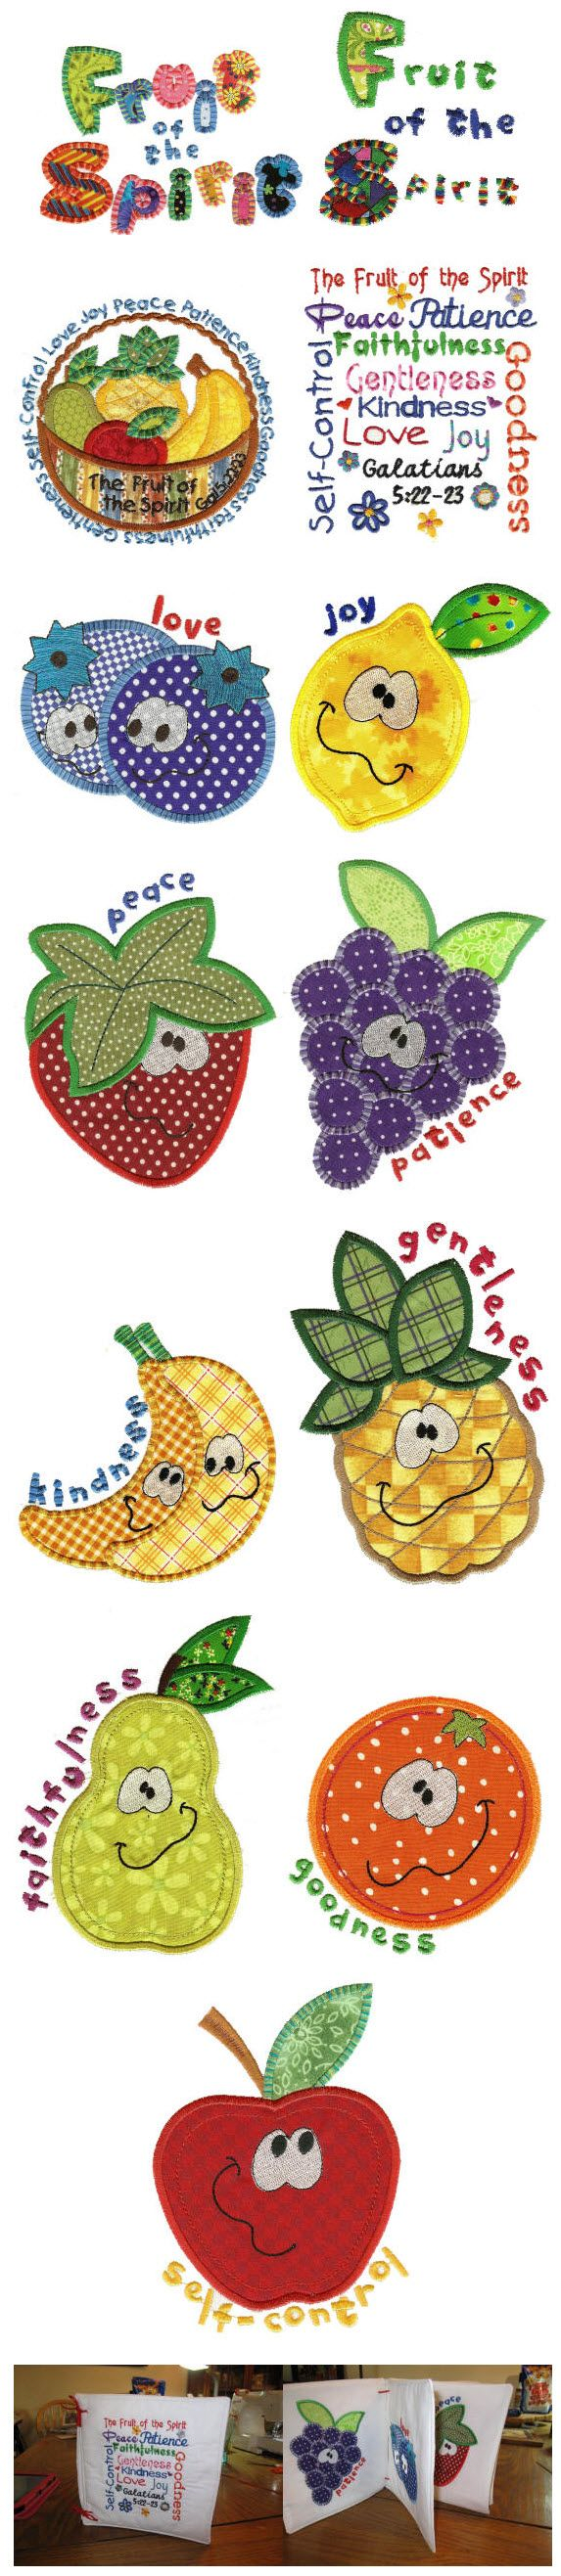 Embroidery | Free Machine Embroidery Designs | Fruit of the Spirit Applique